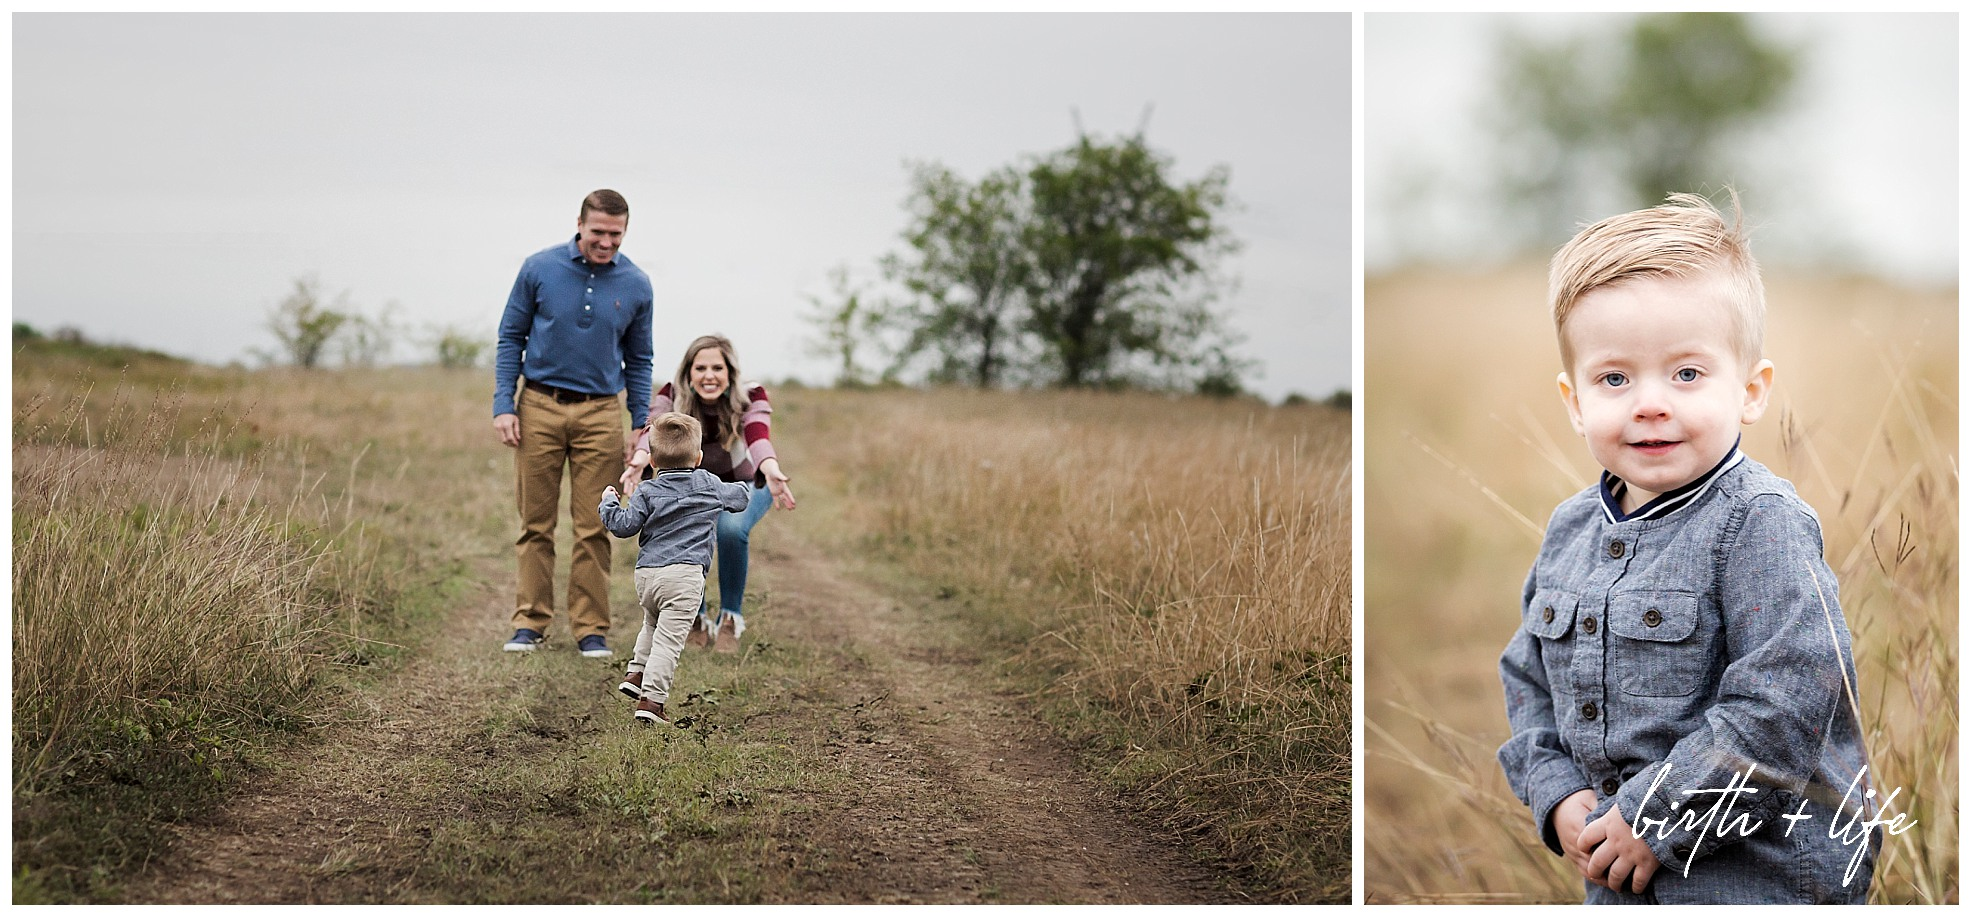 dfw-birth-and-life-photography-family-photojournalism-documentary-kids-photographer-authentic-fall-family-photos003.jpg